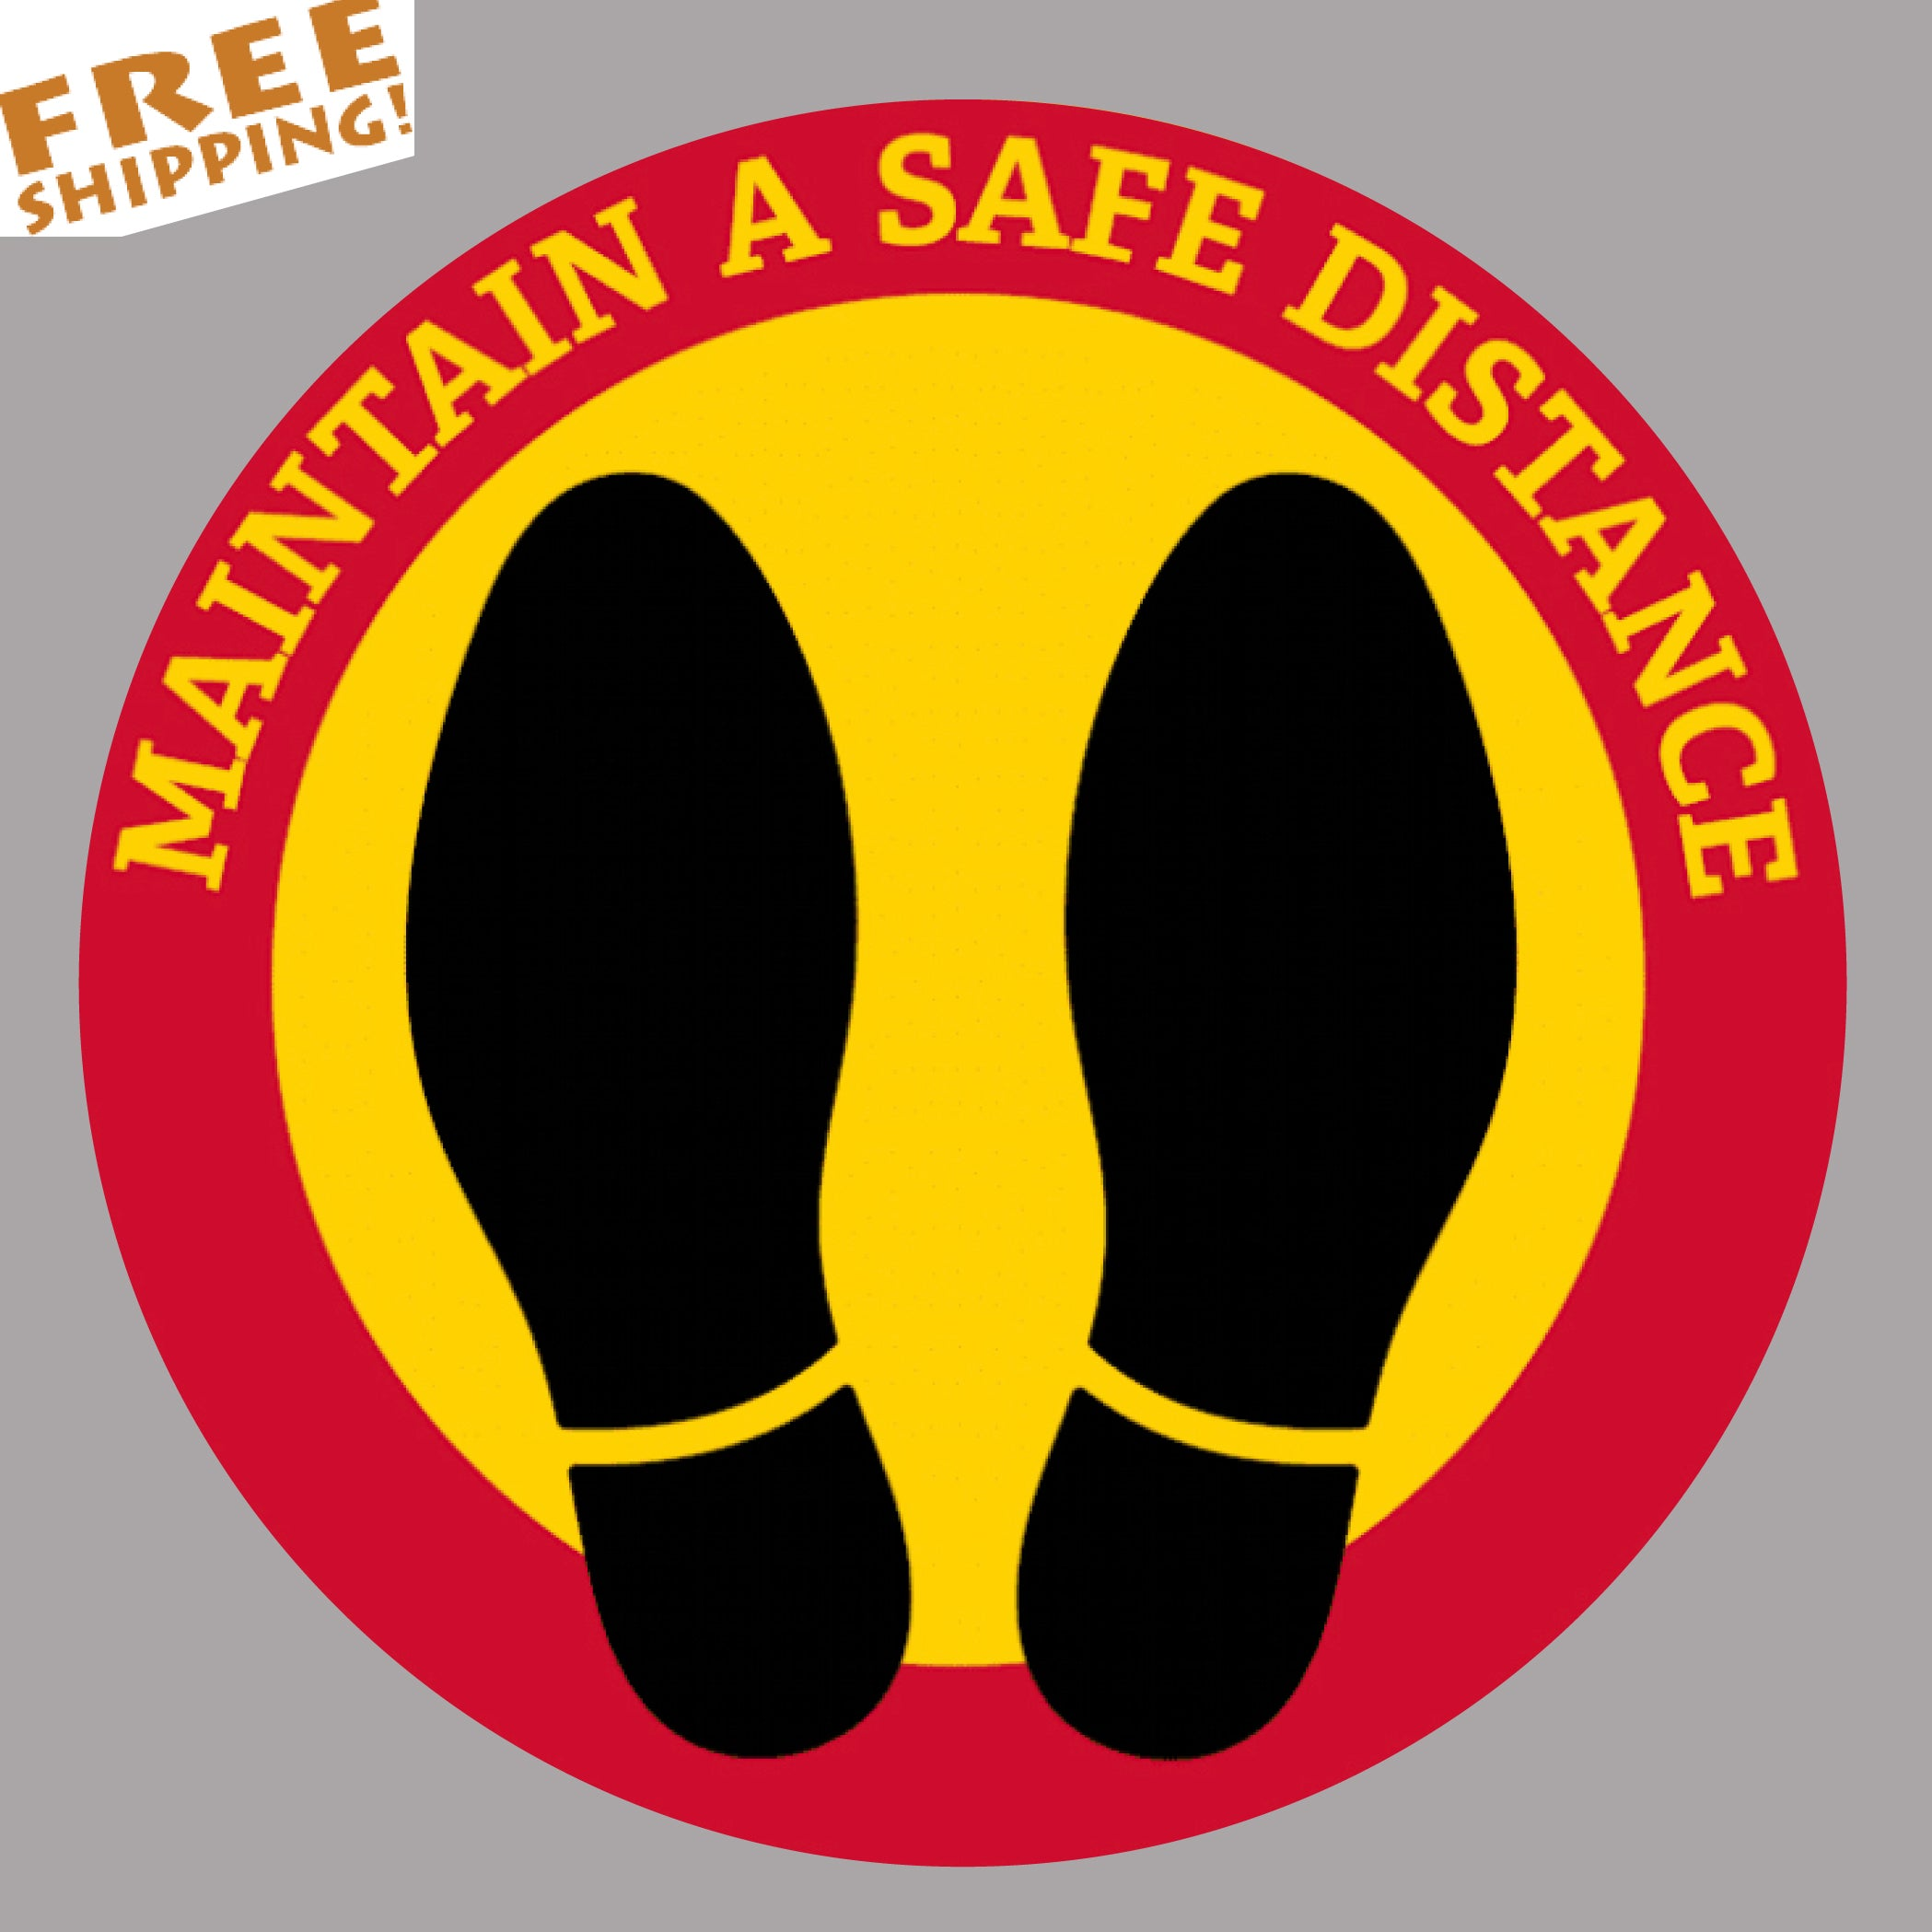 "SOCIAL DISTANCE Red-Yellow STOP CORONAVIRUS 5"" or 12"" Circle Floor Stickers Business"